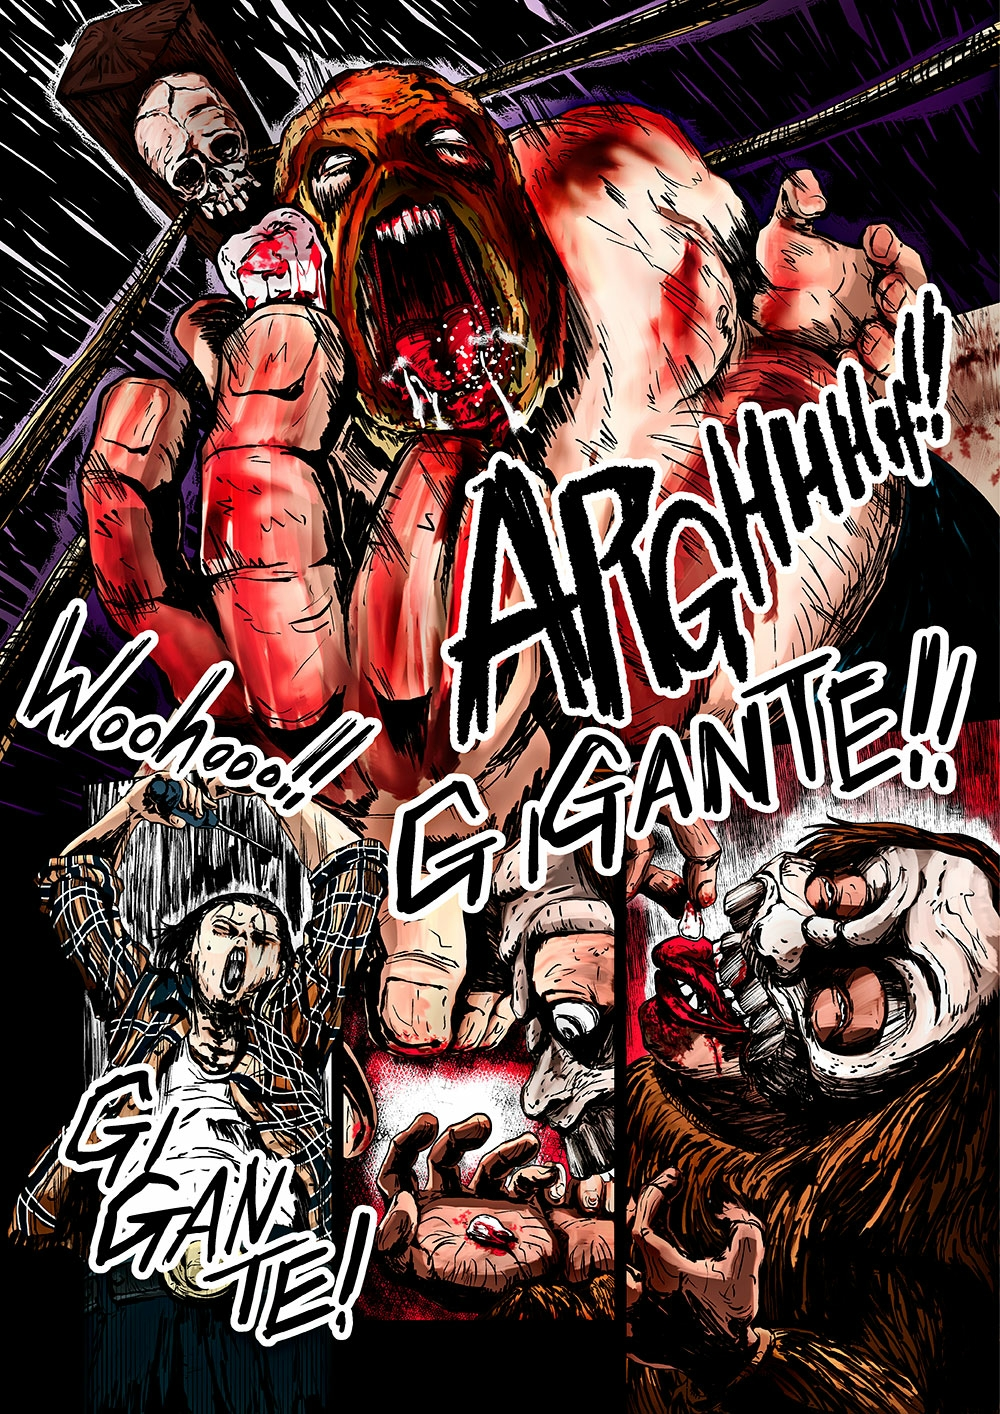 EL GIGANTE features some seriously stunning art work.